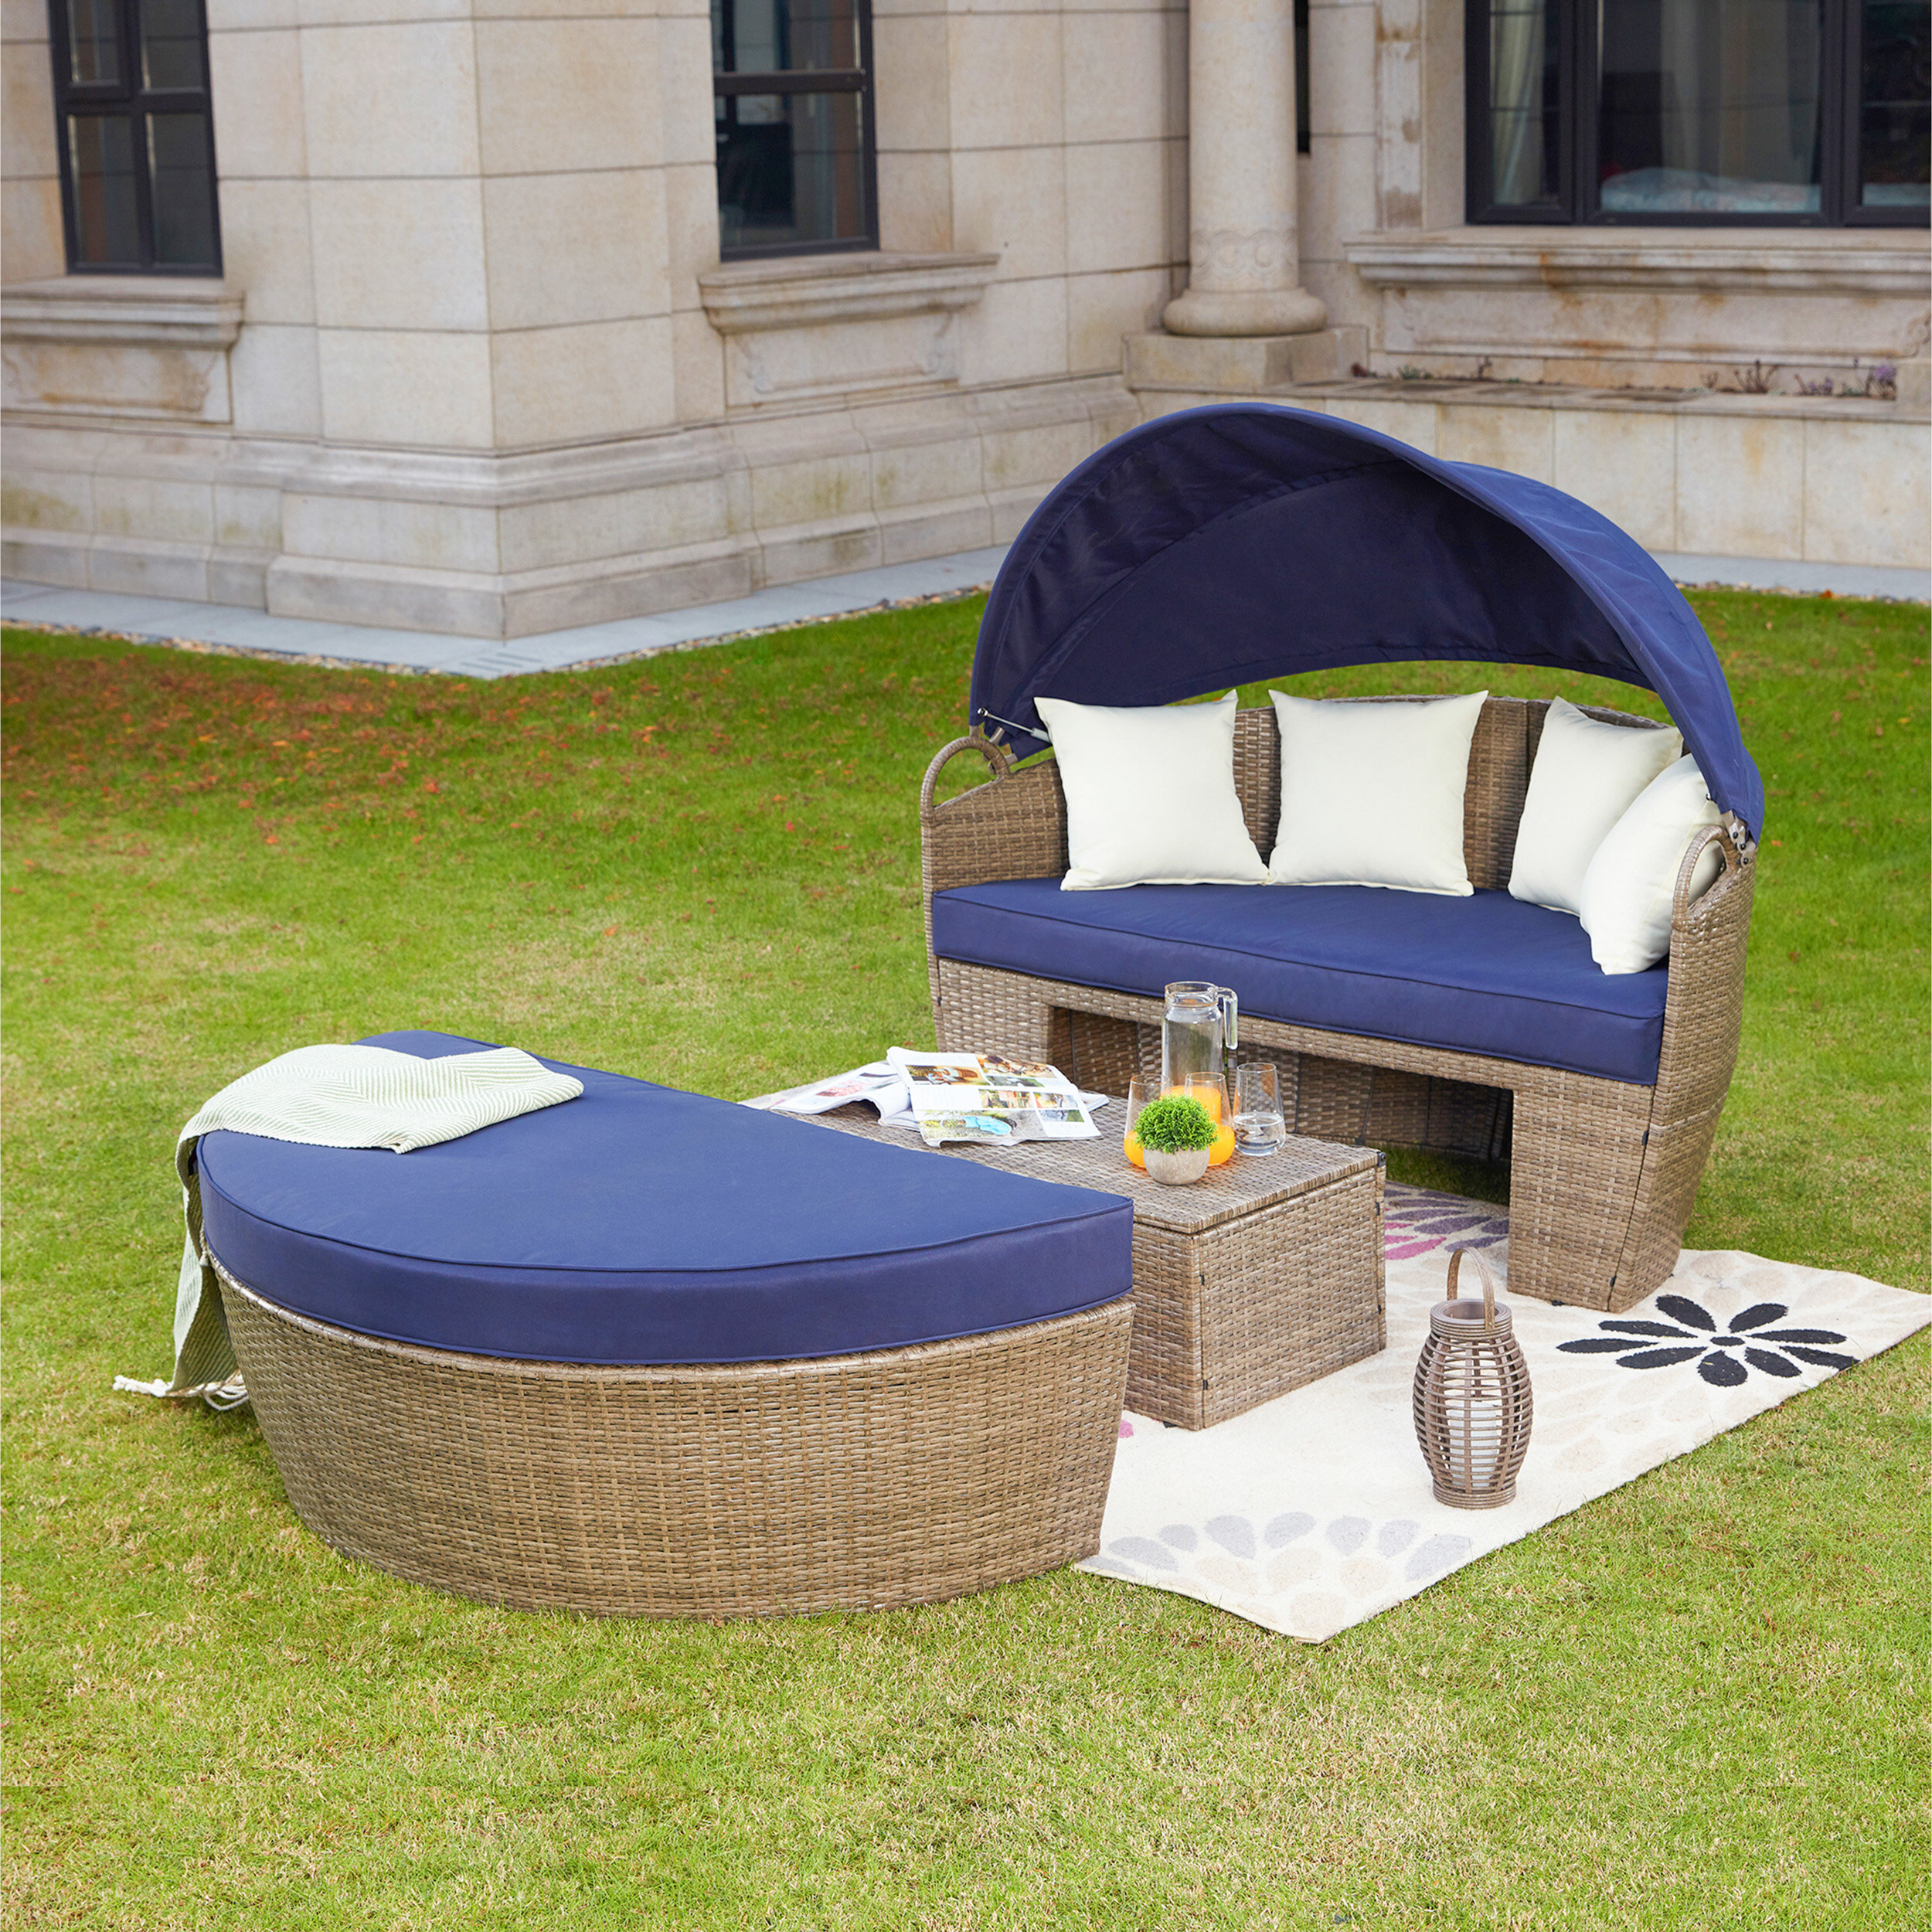 Fansler Patio Daybed With Cushions With Famous Patio Daybeds With Cushions (View 10 of 20)